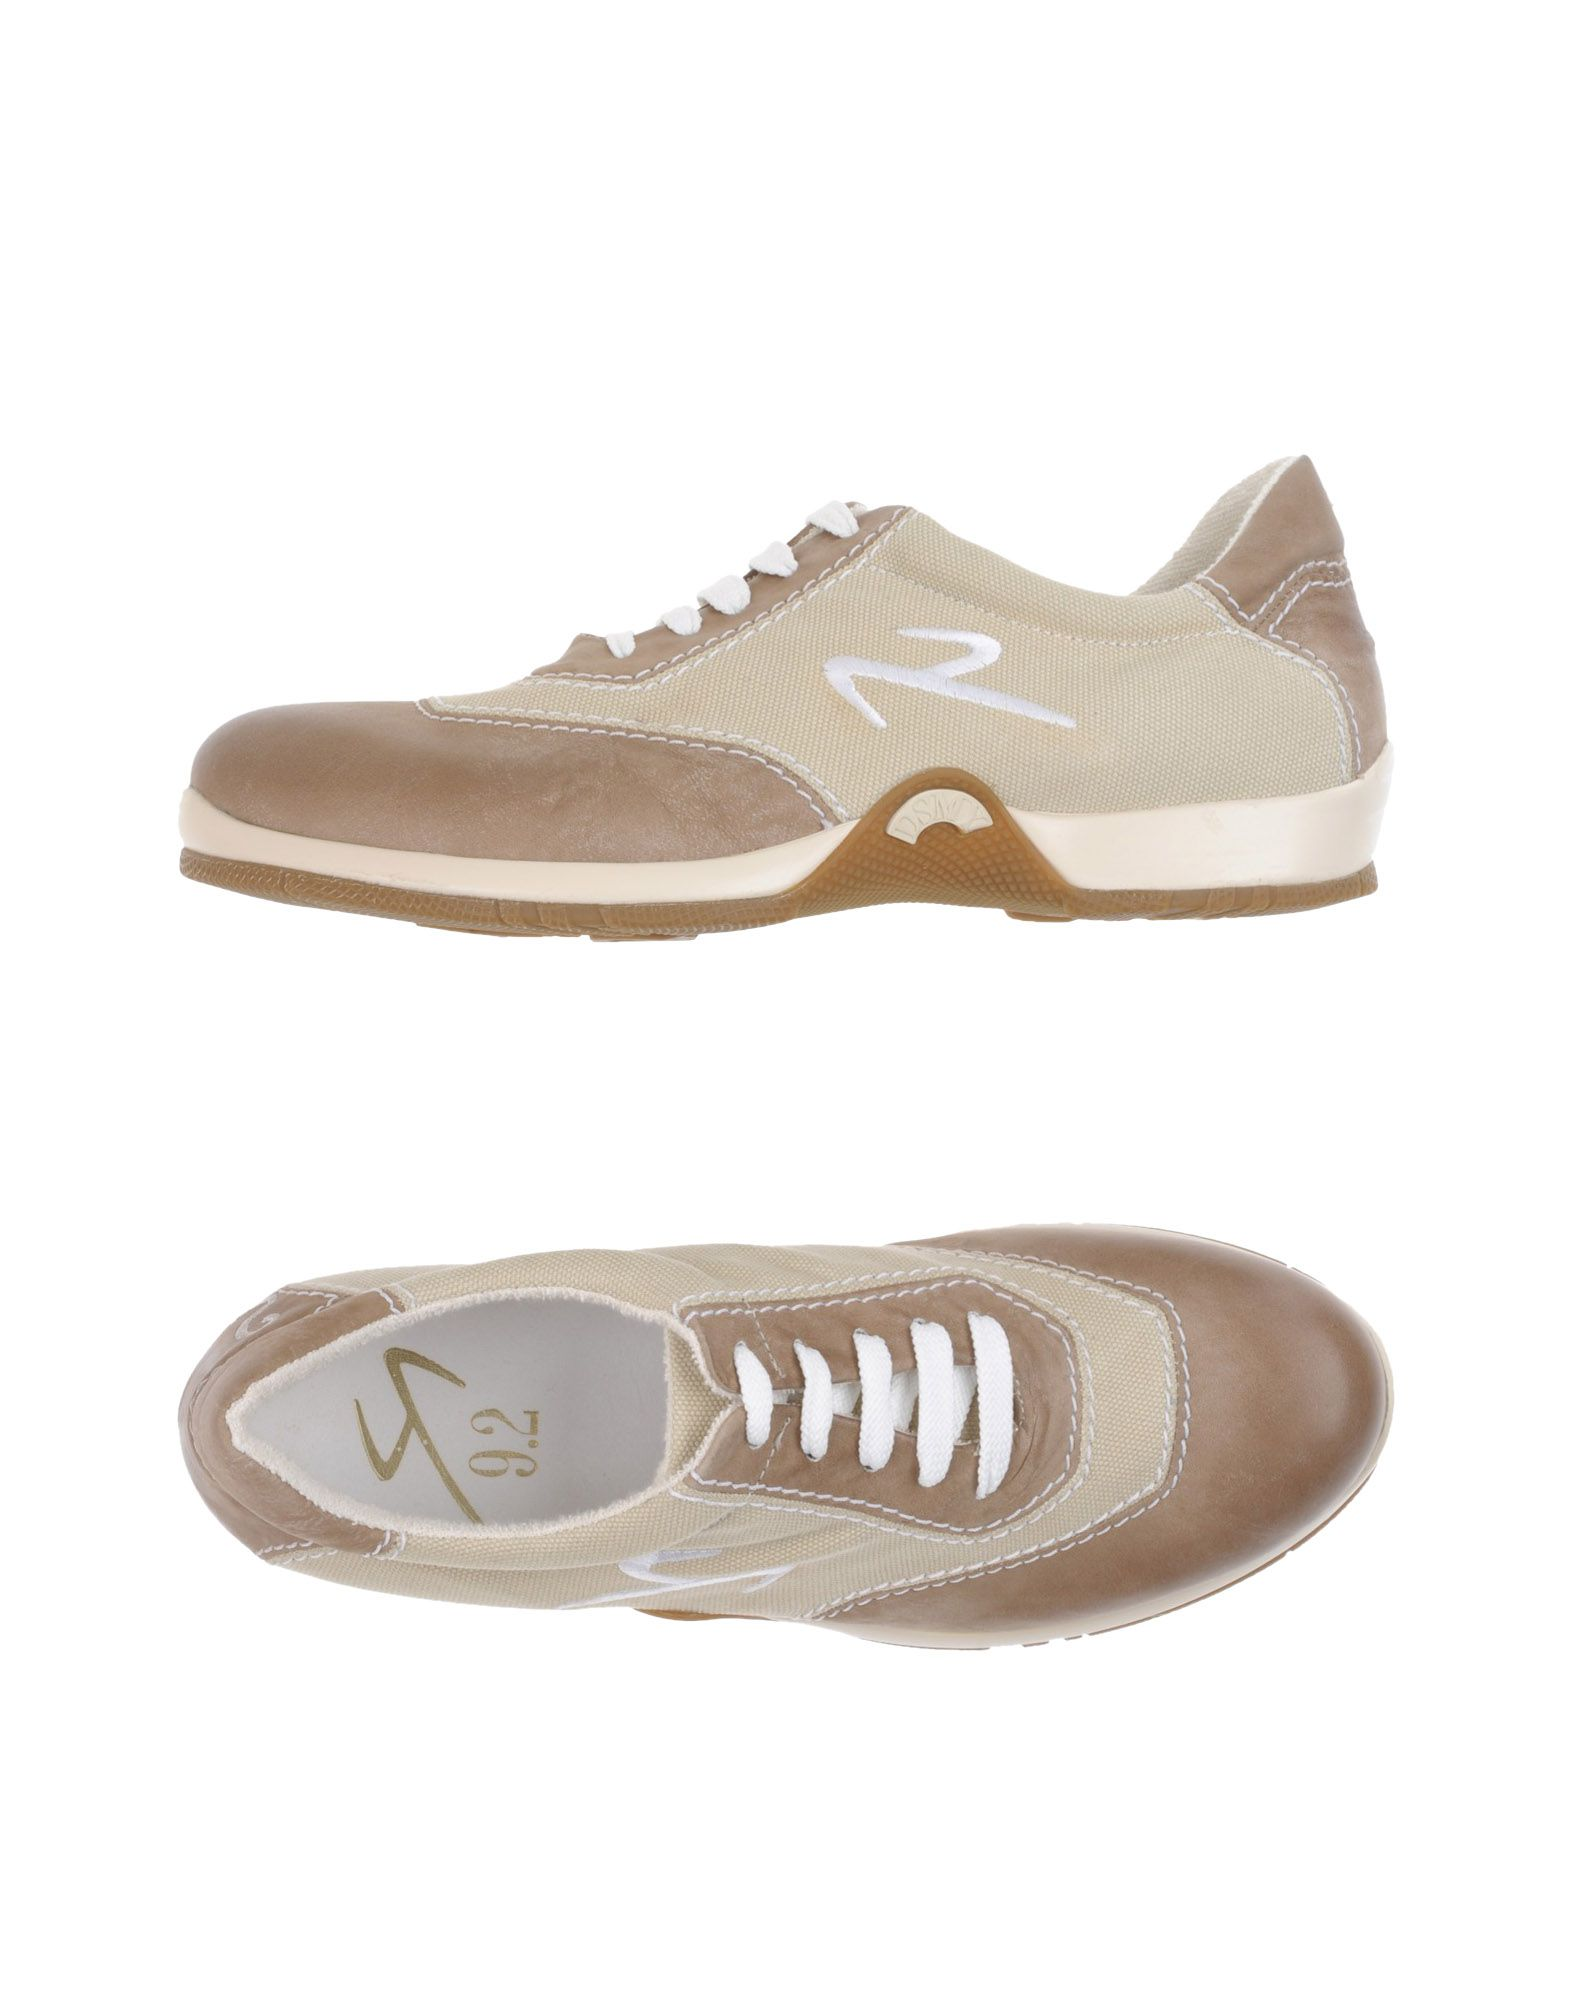 Sneakers 9.2 By Carlo Chionna Uomo - 11391010VL